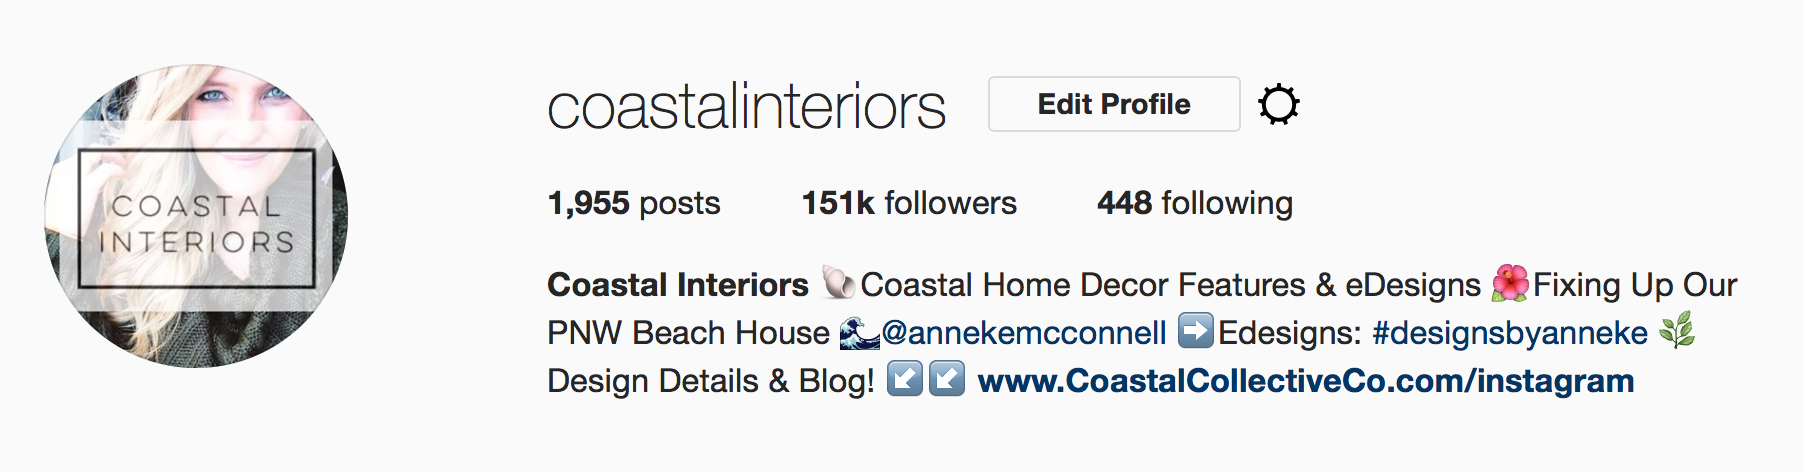 Coastal Interiors Instagram